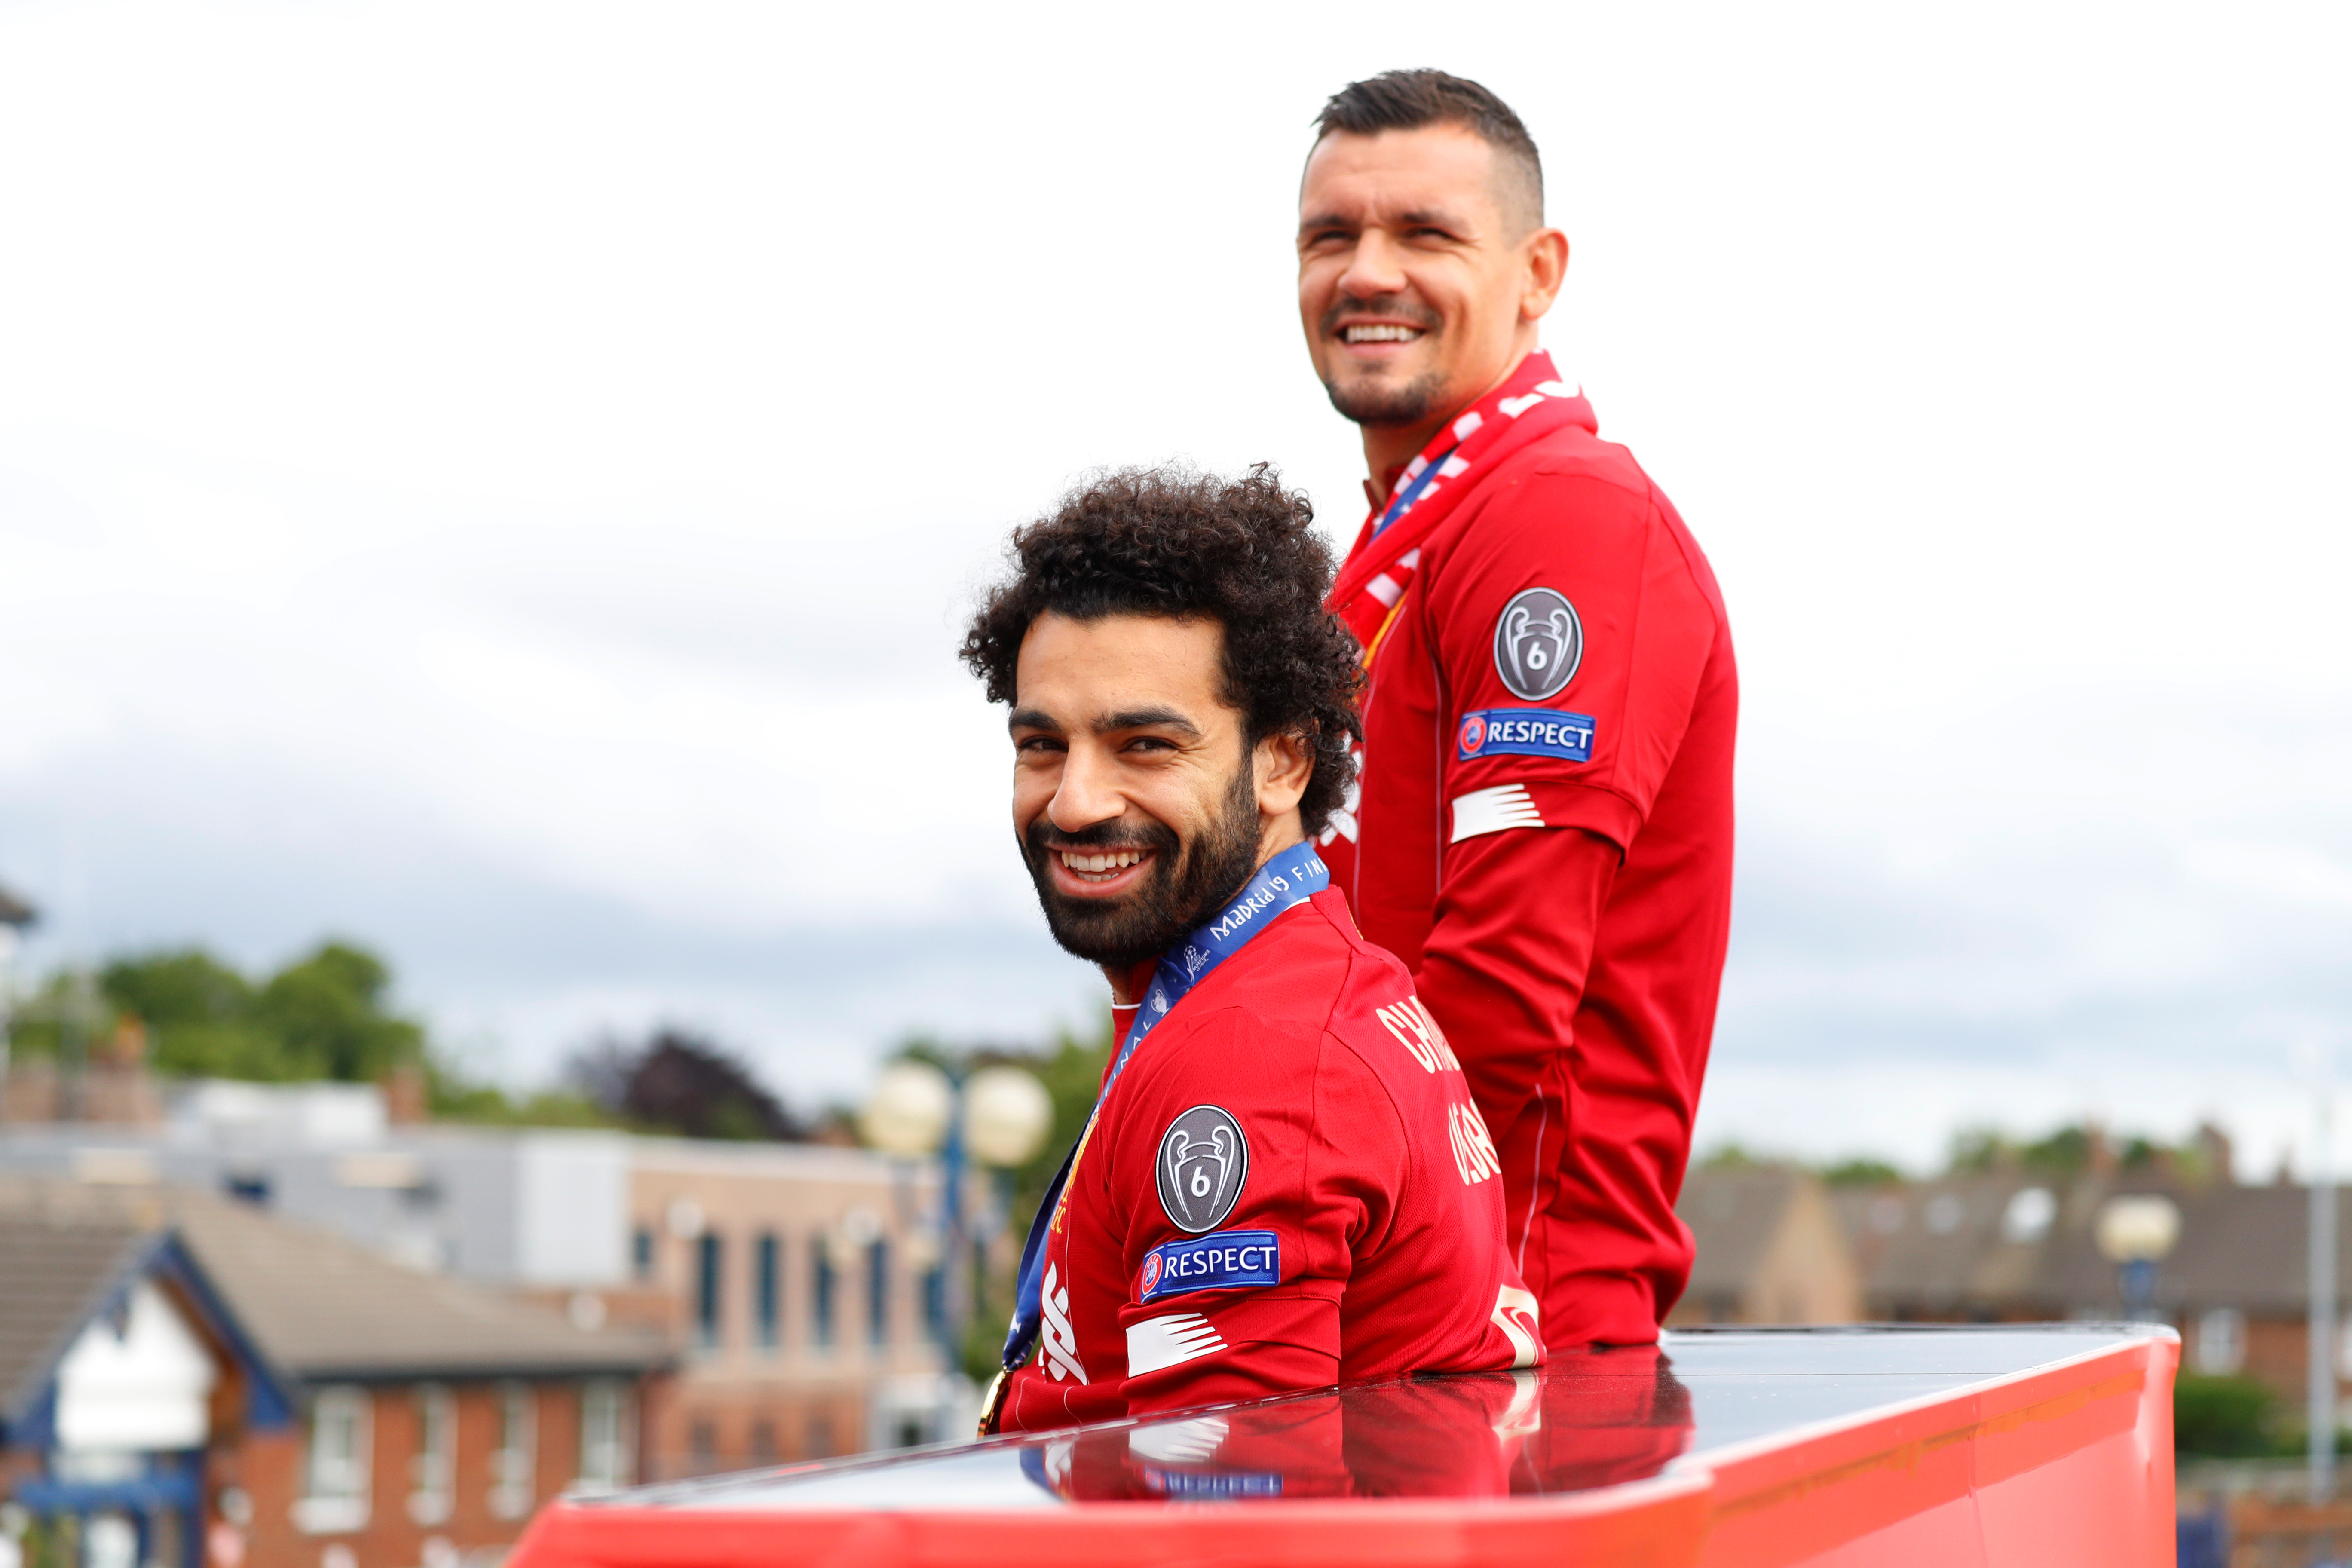 Top 5 Liverpool players to be sold - Summer 2020